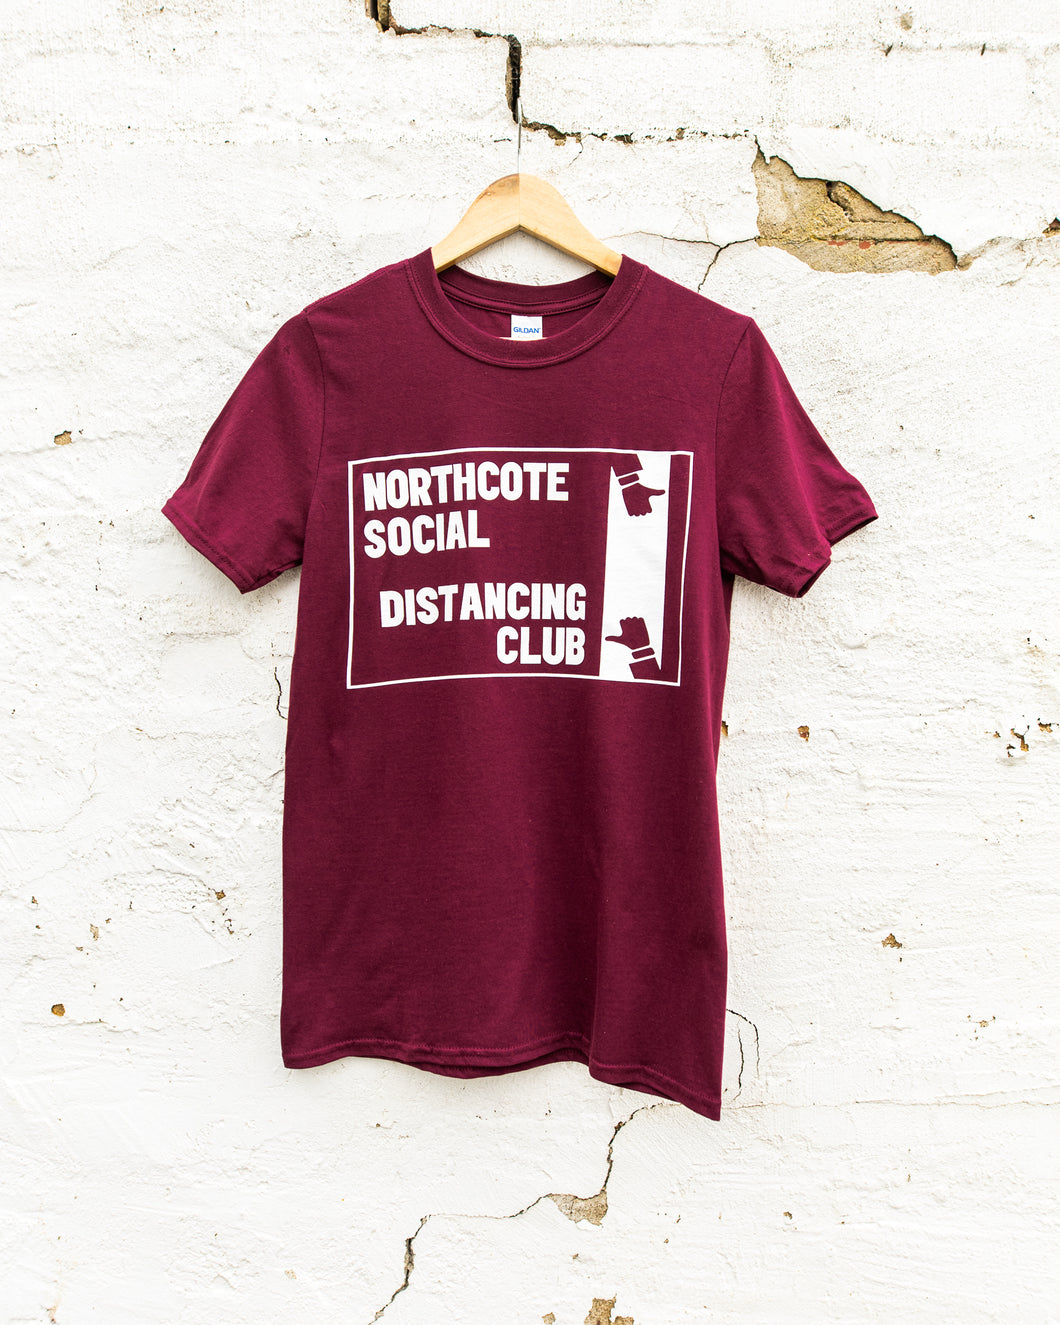 Northcote Social Distancing Club Tee